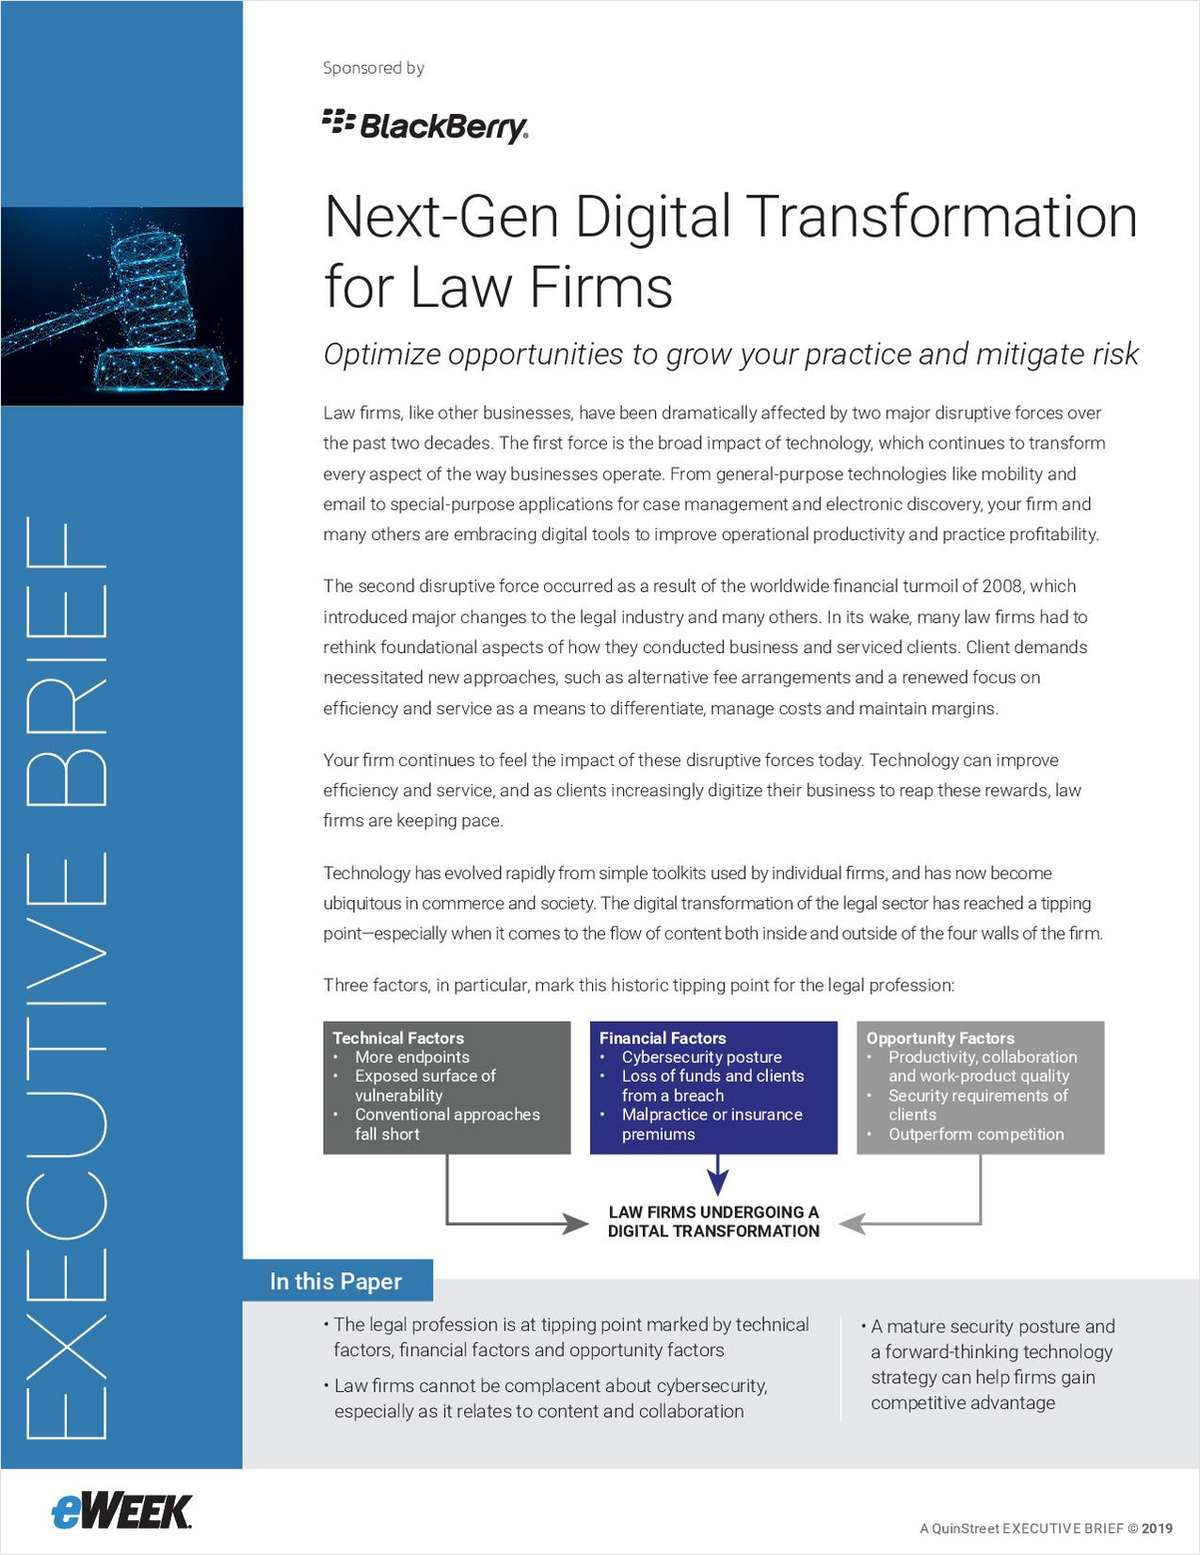 Law Firm Digital Transformation: How to Optimize Opportunities for Growth and Risk Mitigation